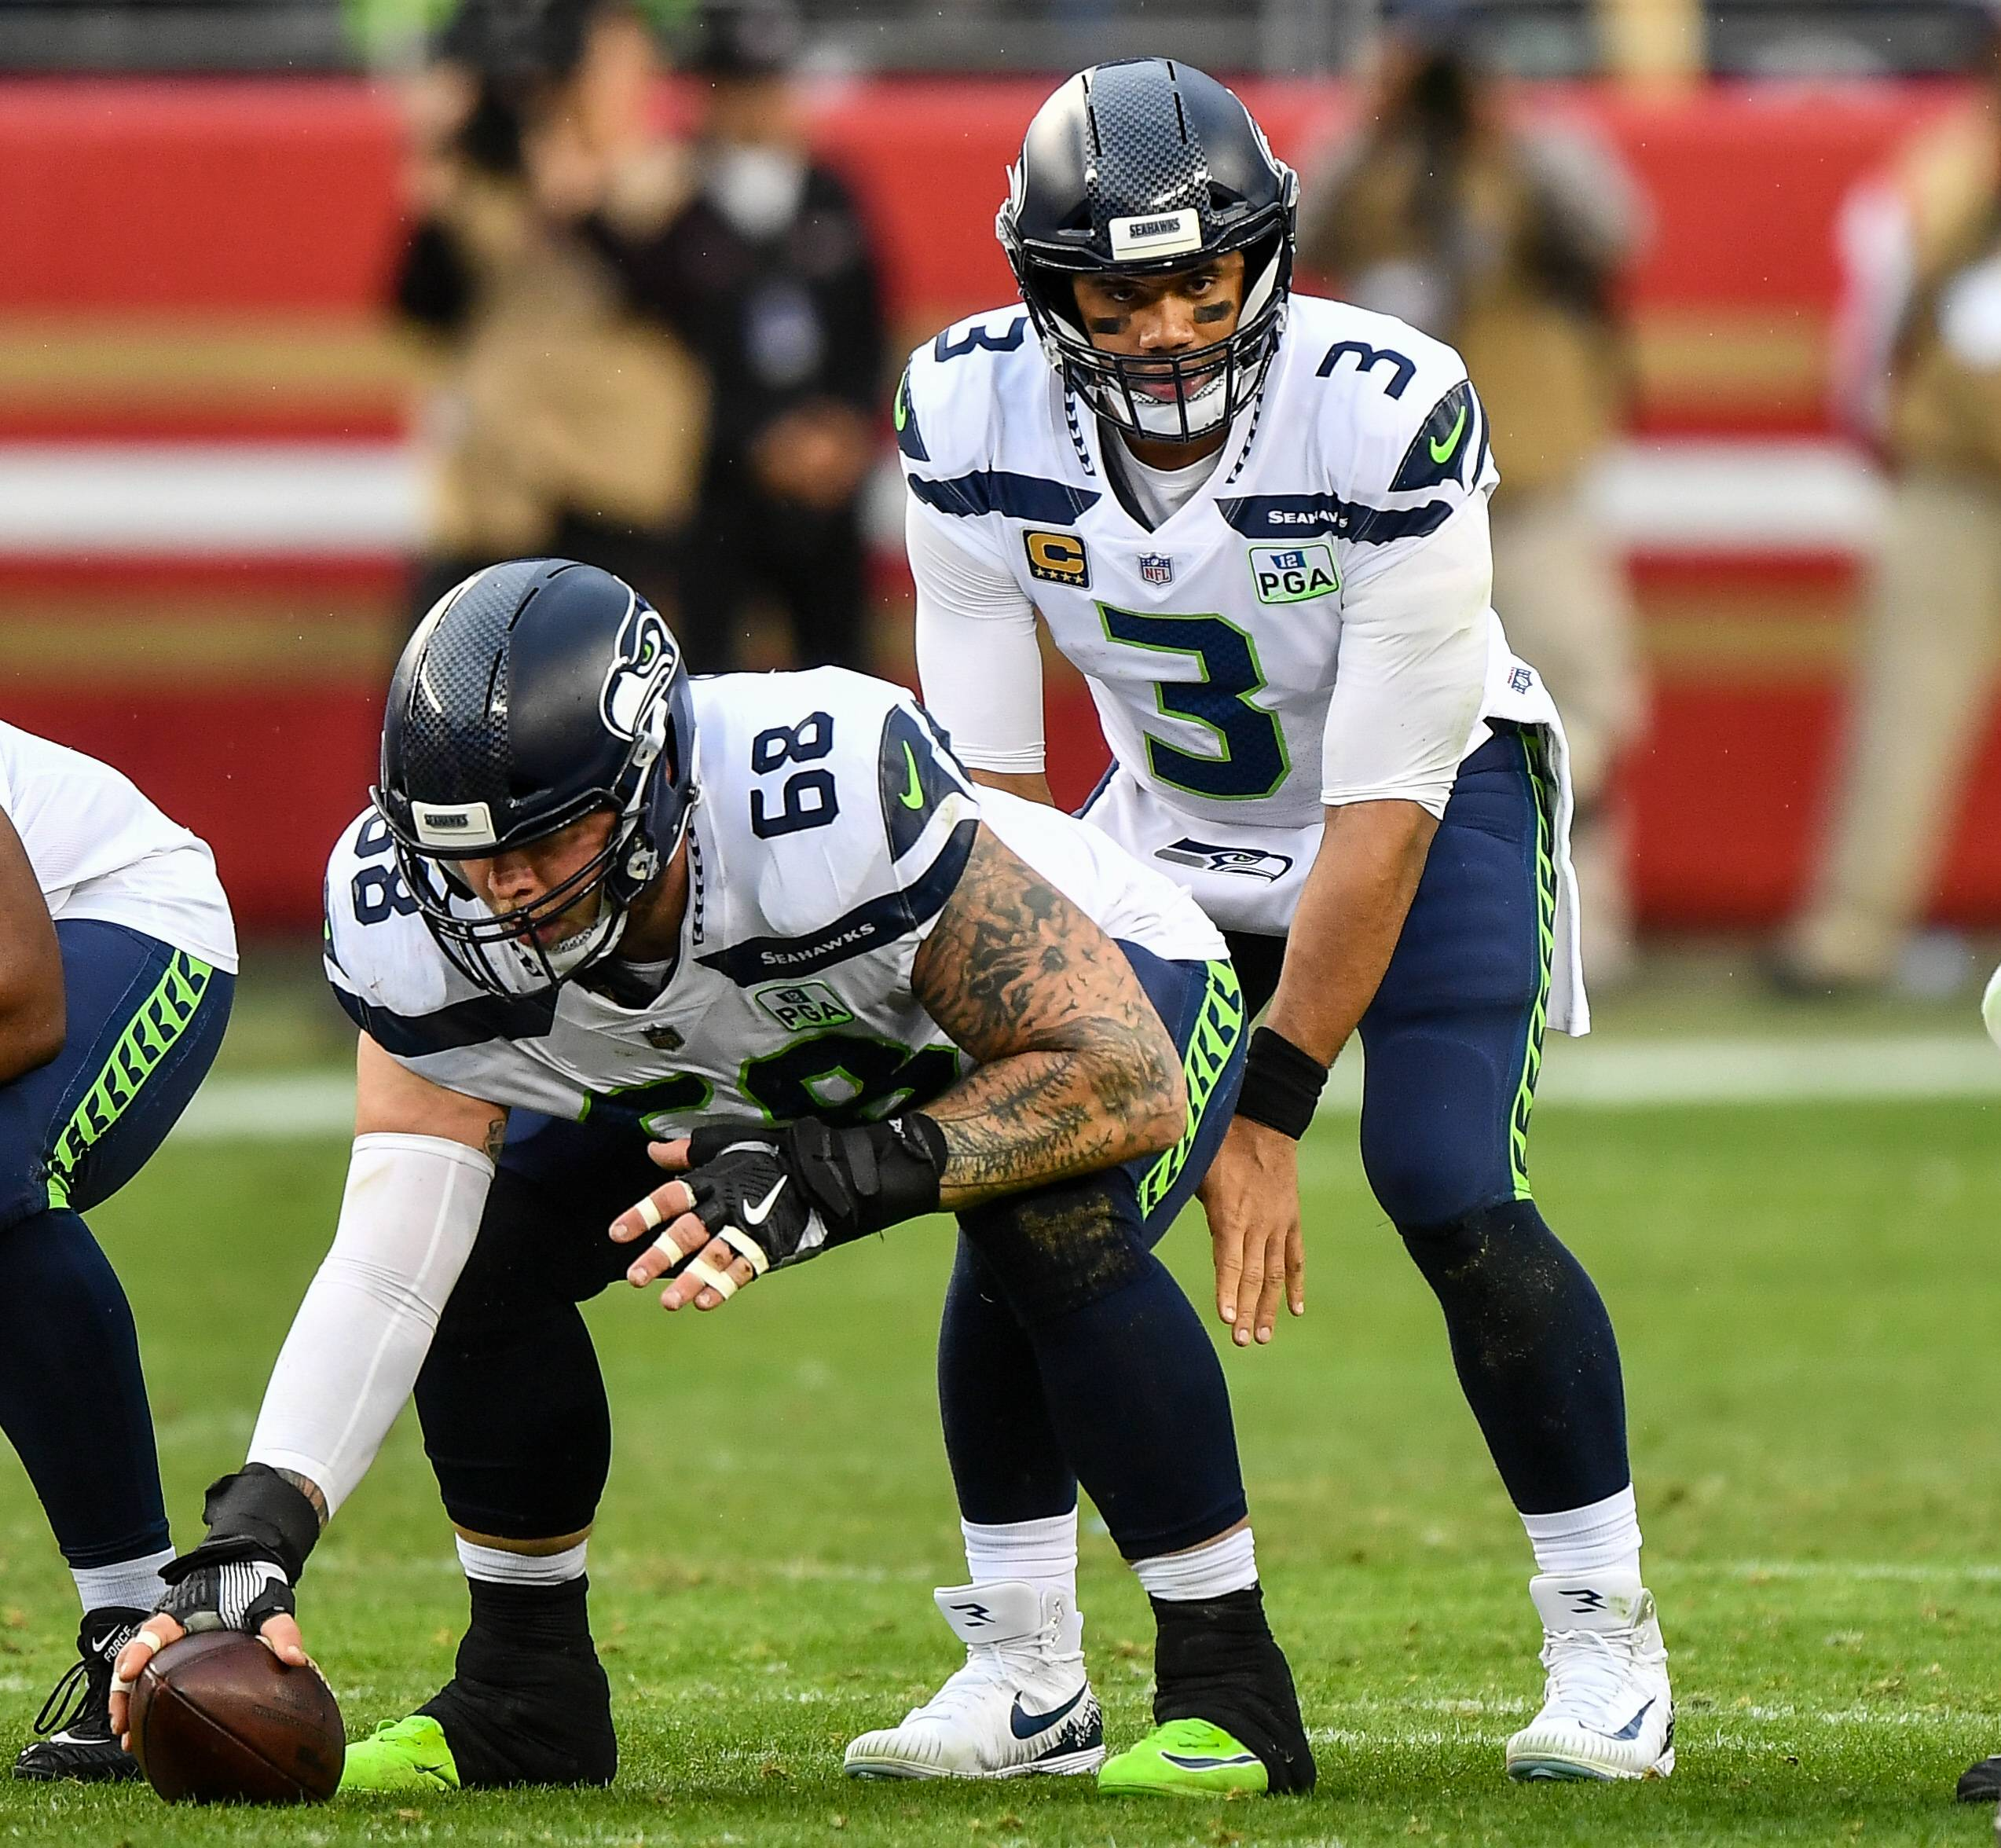 December 16 2018 Seattle Seahawks quarterback Russell Wilson 3 takes a snap from center Seattle